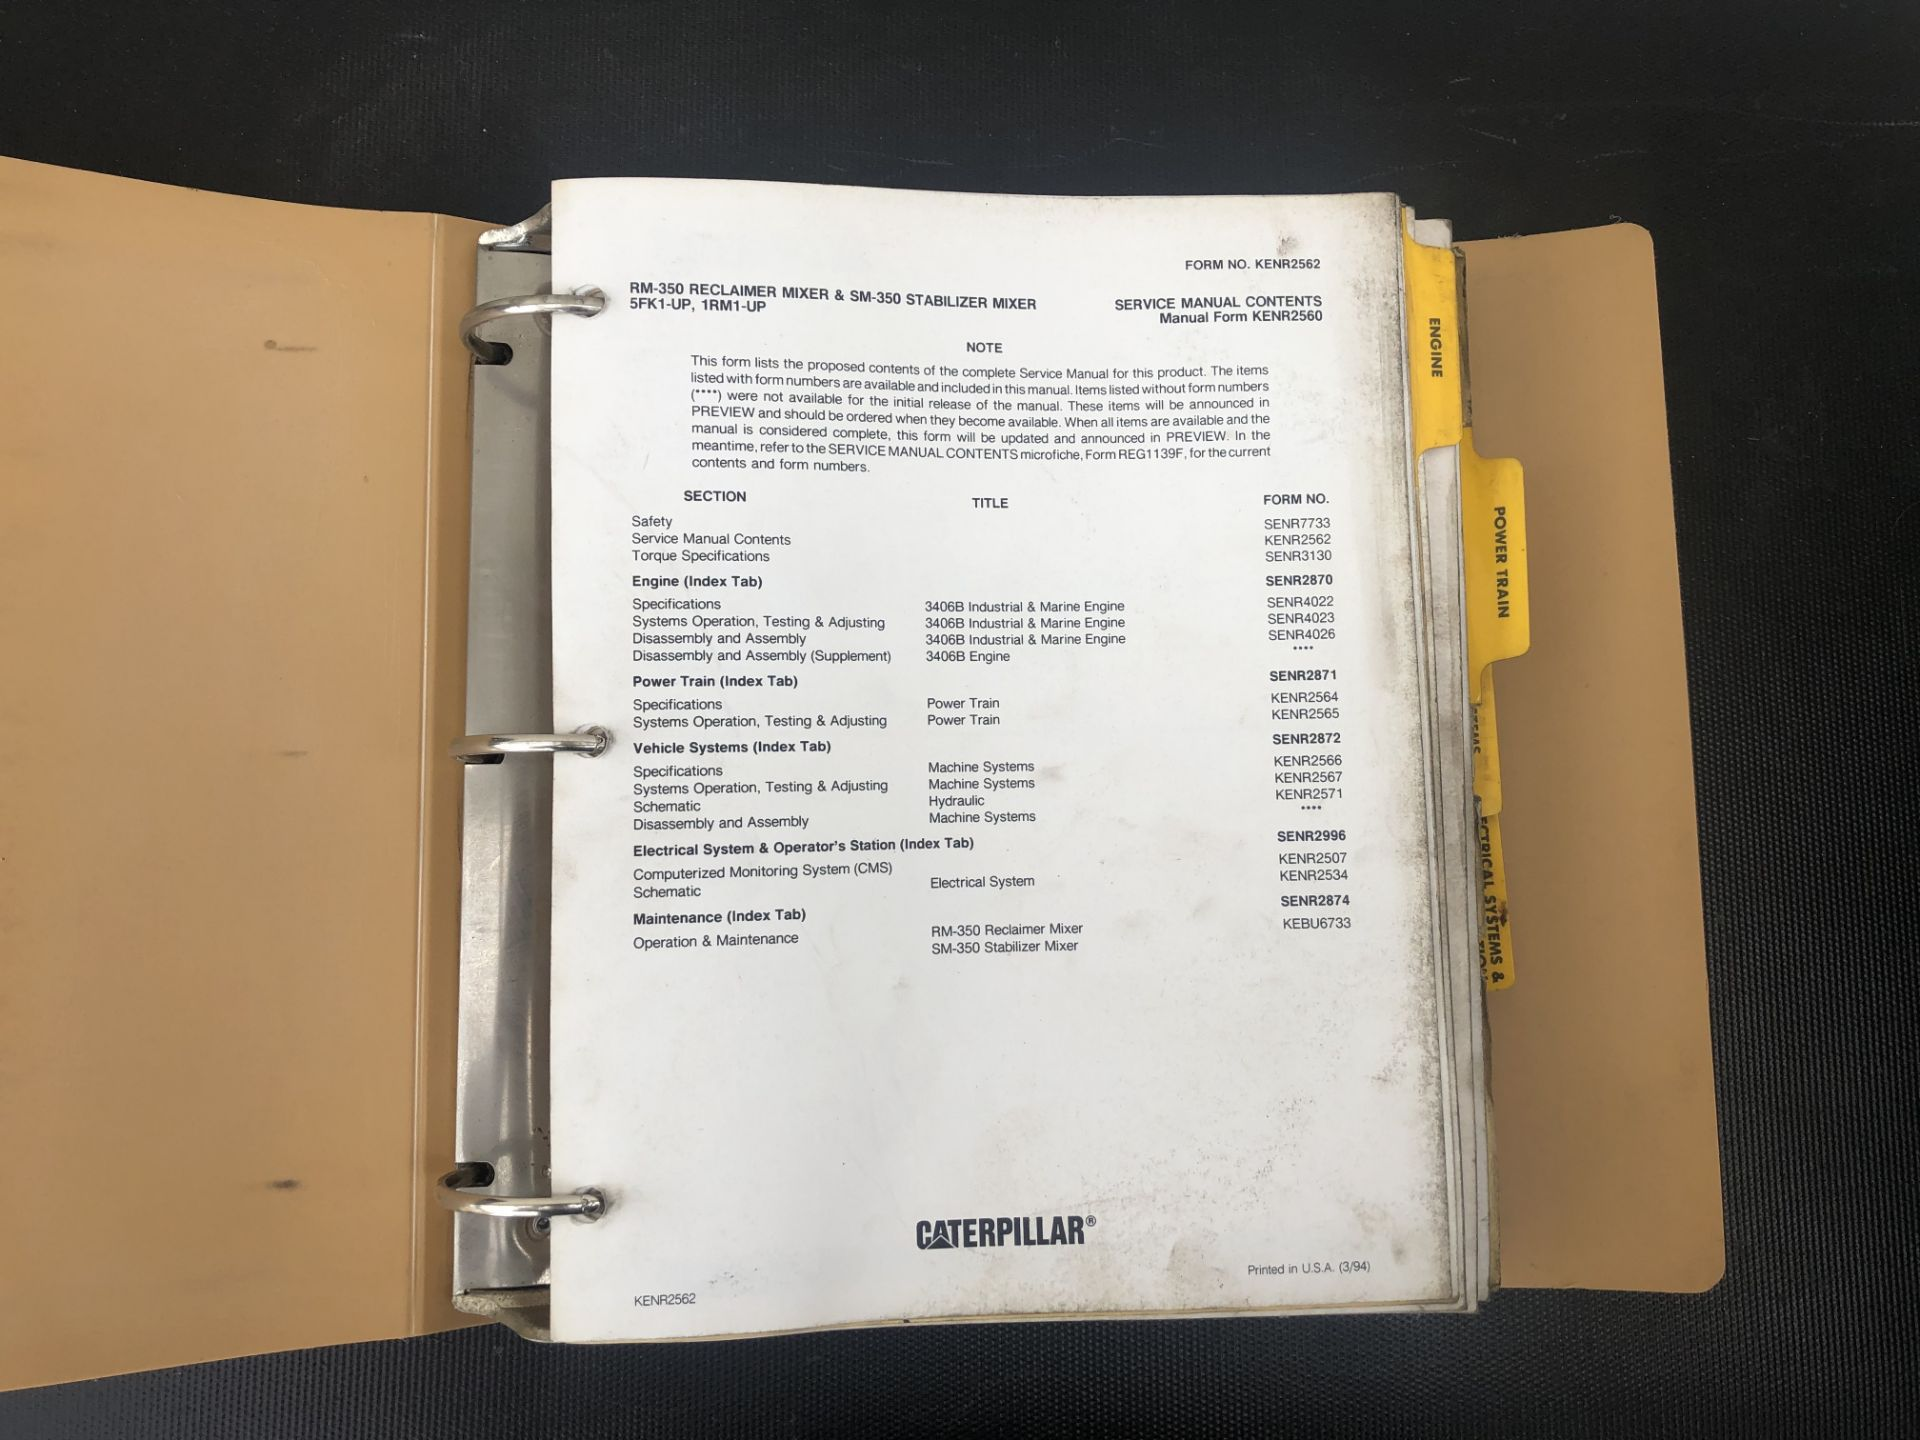 CATERPILLAR RM350 SM350 SERVICE MANUAL, GENUINE FACTORY CAT WORKSHOP MANUAL - Image 3 of 3